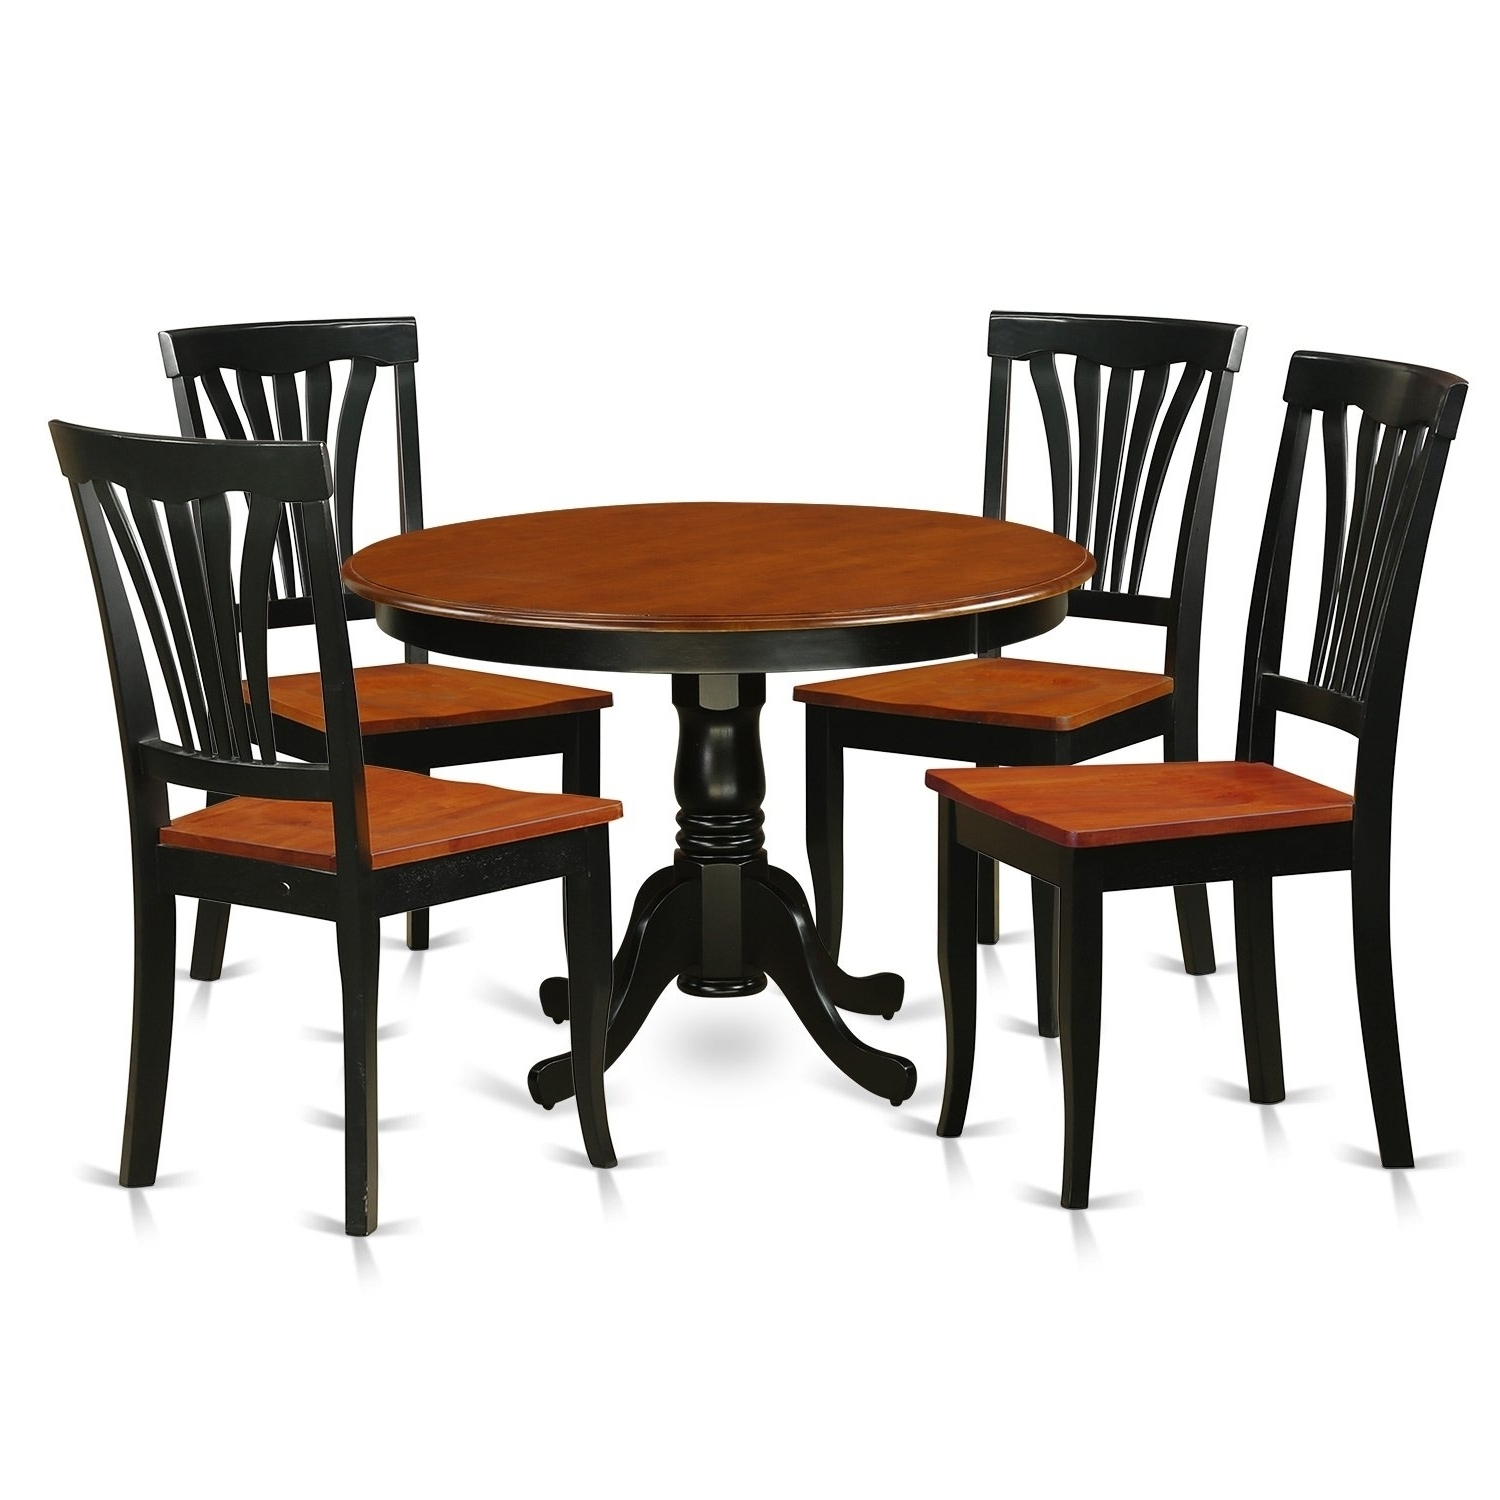 Widely Used Hlav5 W 5 Pc Table Set With A Dinette Table And 4 Dining Chairs Throughout Caden 5 Piece Round Dining Sets With Upholstered Side Chairs (View 25 of 25)